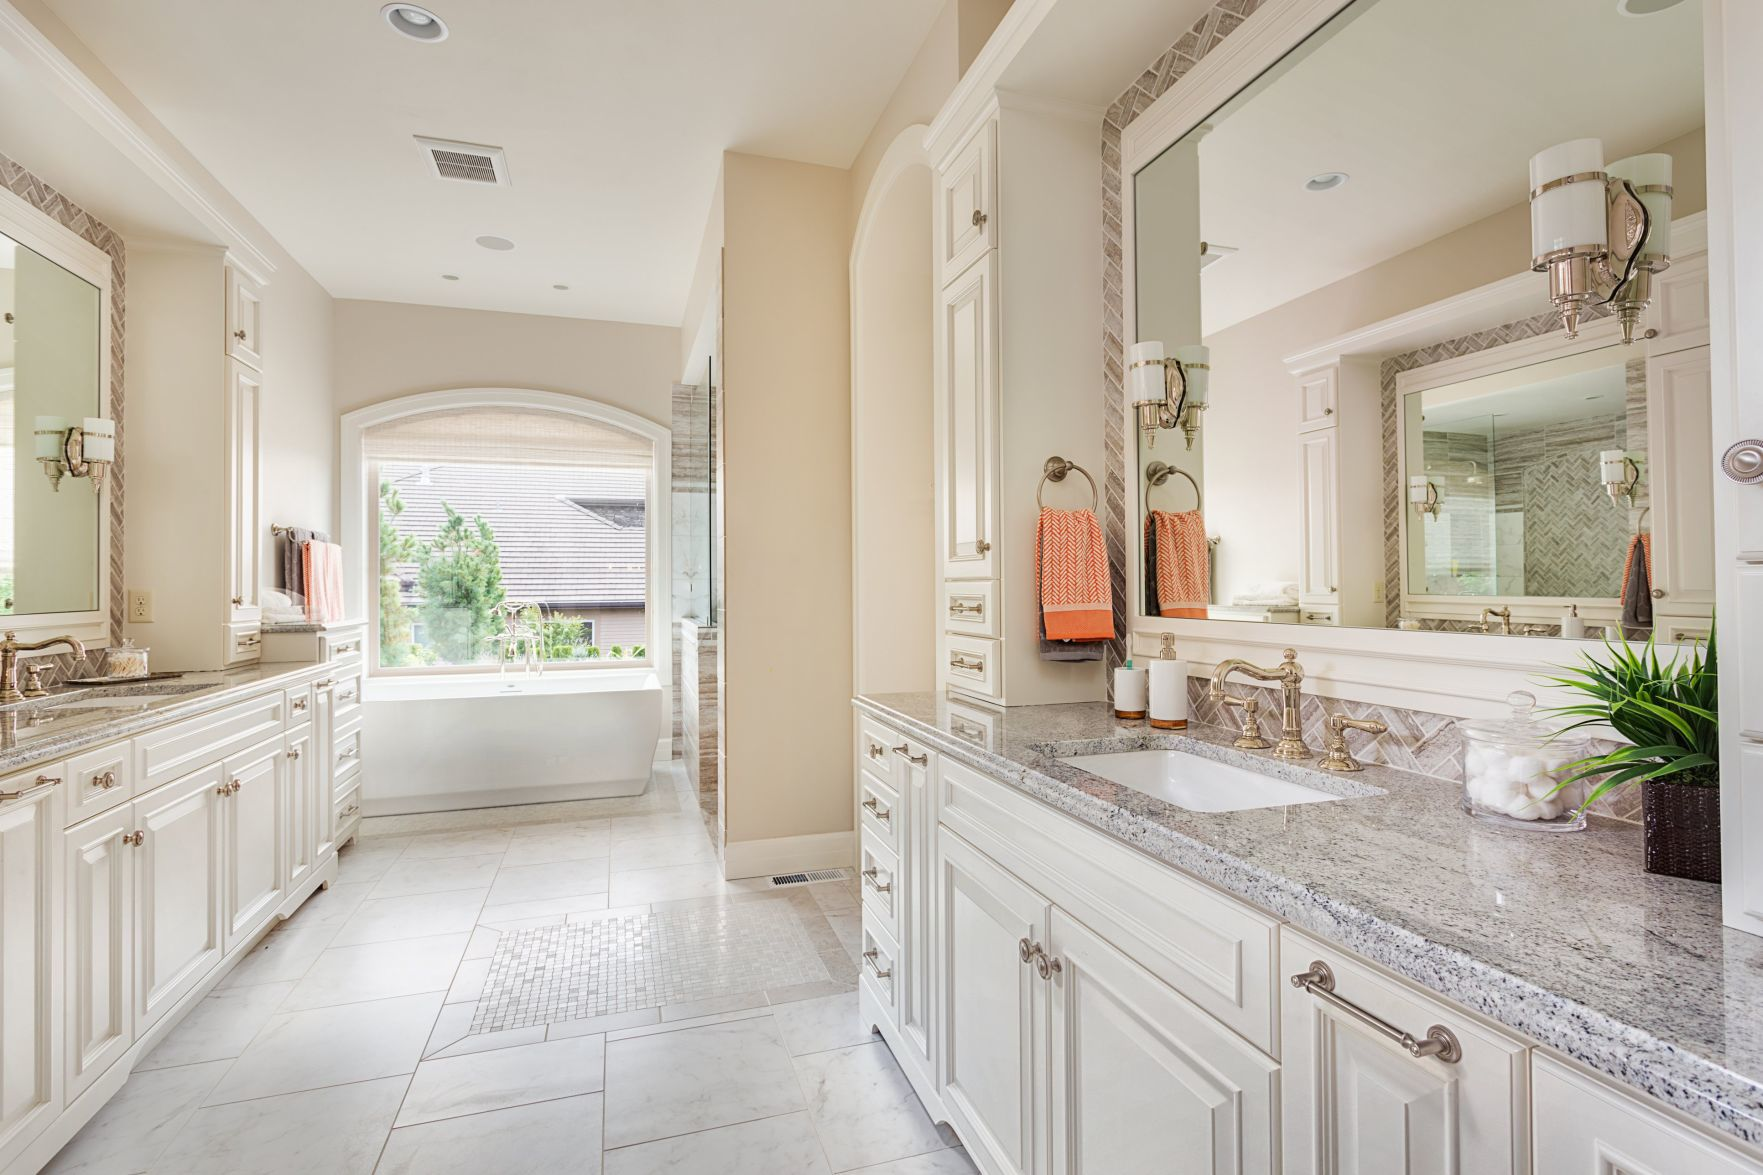 Delicieux The National Average Bathroom Remodel Cost Is $9,755, According To  HomeAdvisoru0027s True Cost Report.